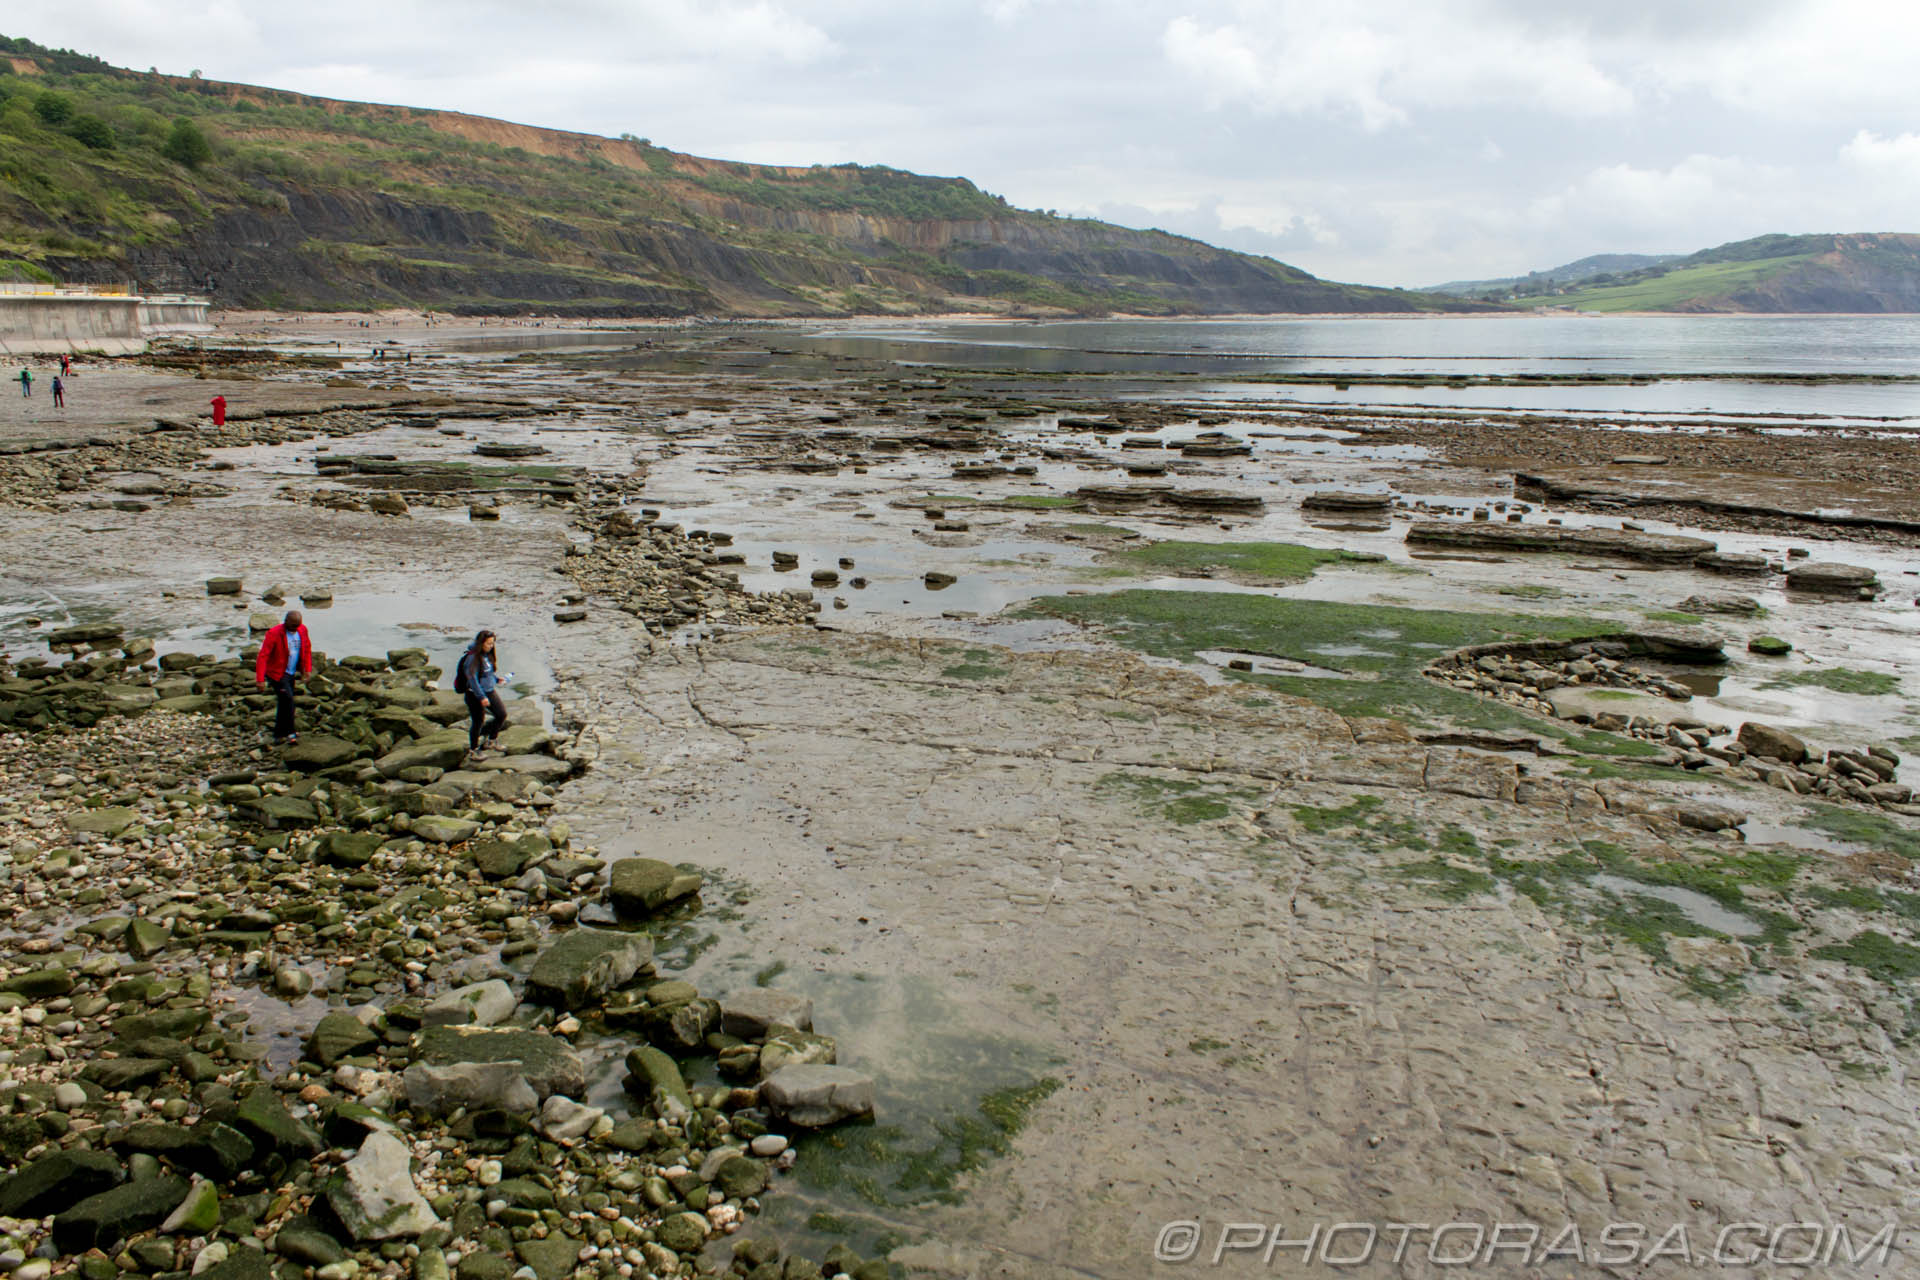 http://photorasa.com/jurassic-coast-lyme-regis/people-walking-on-rocks-at-lyme-regis/